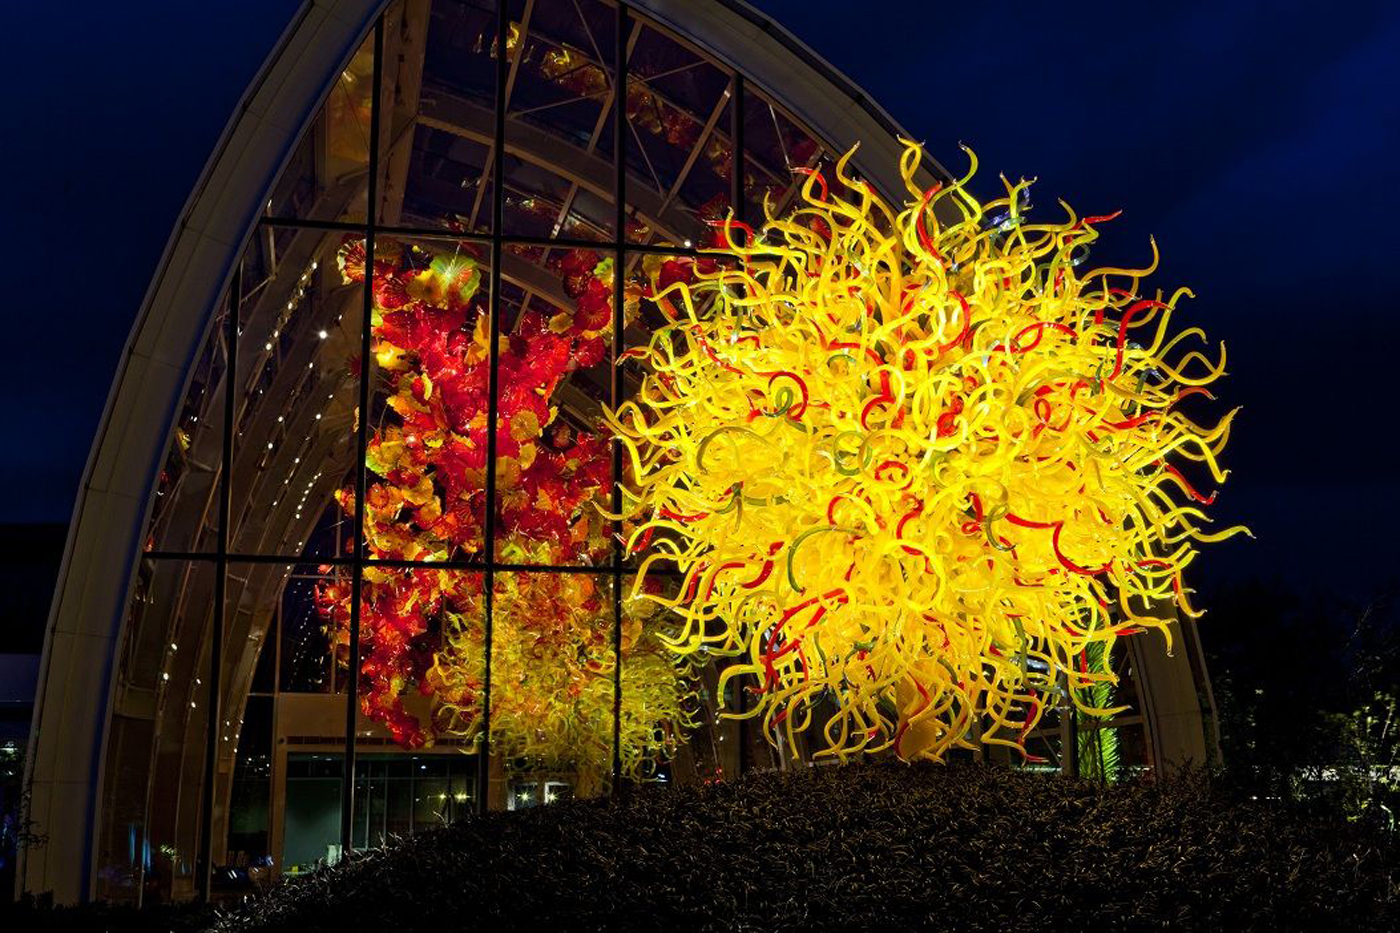 chihuly garden and glass exhibition - Chihuly Garden And Glass Seattle